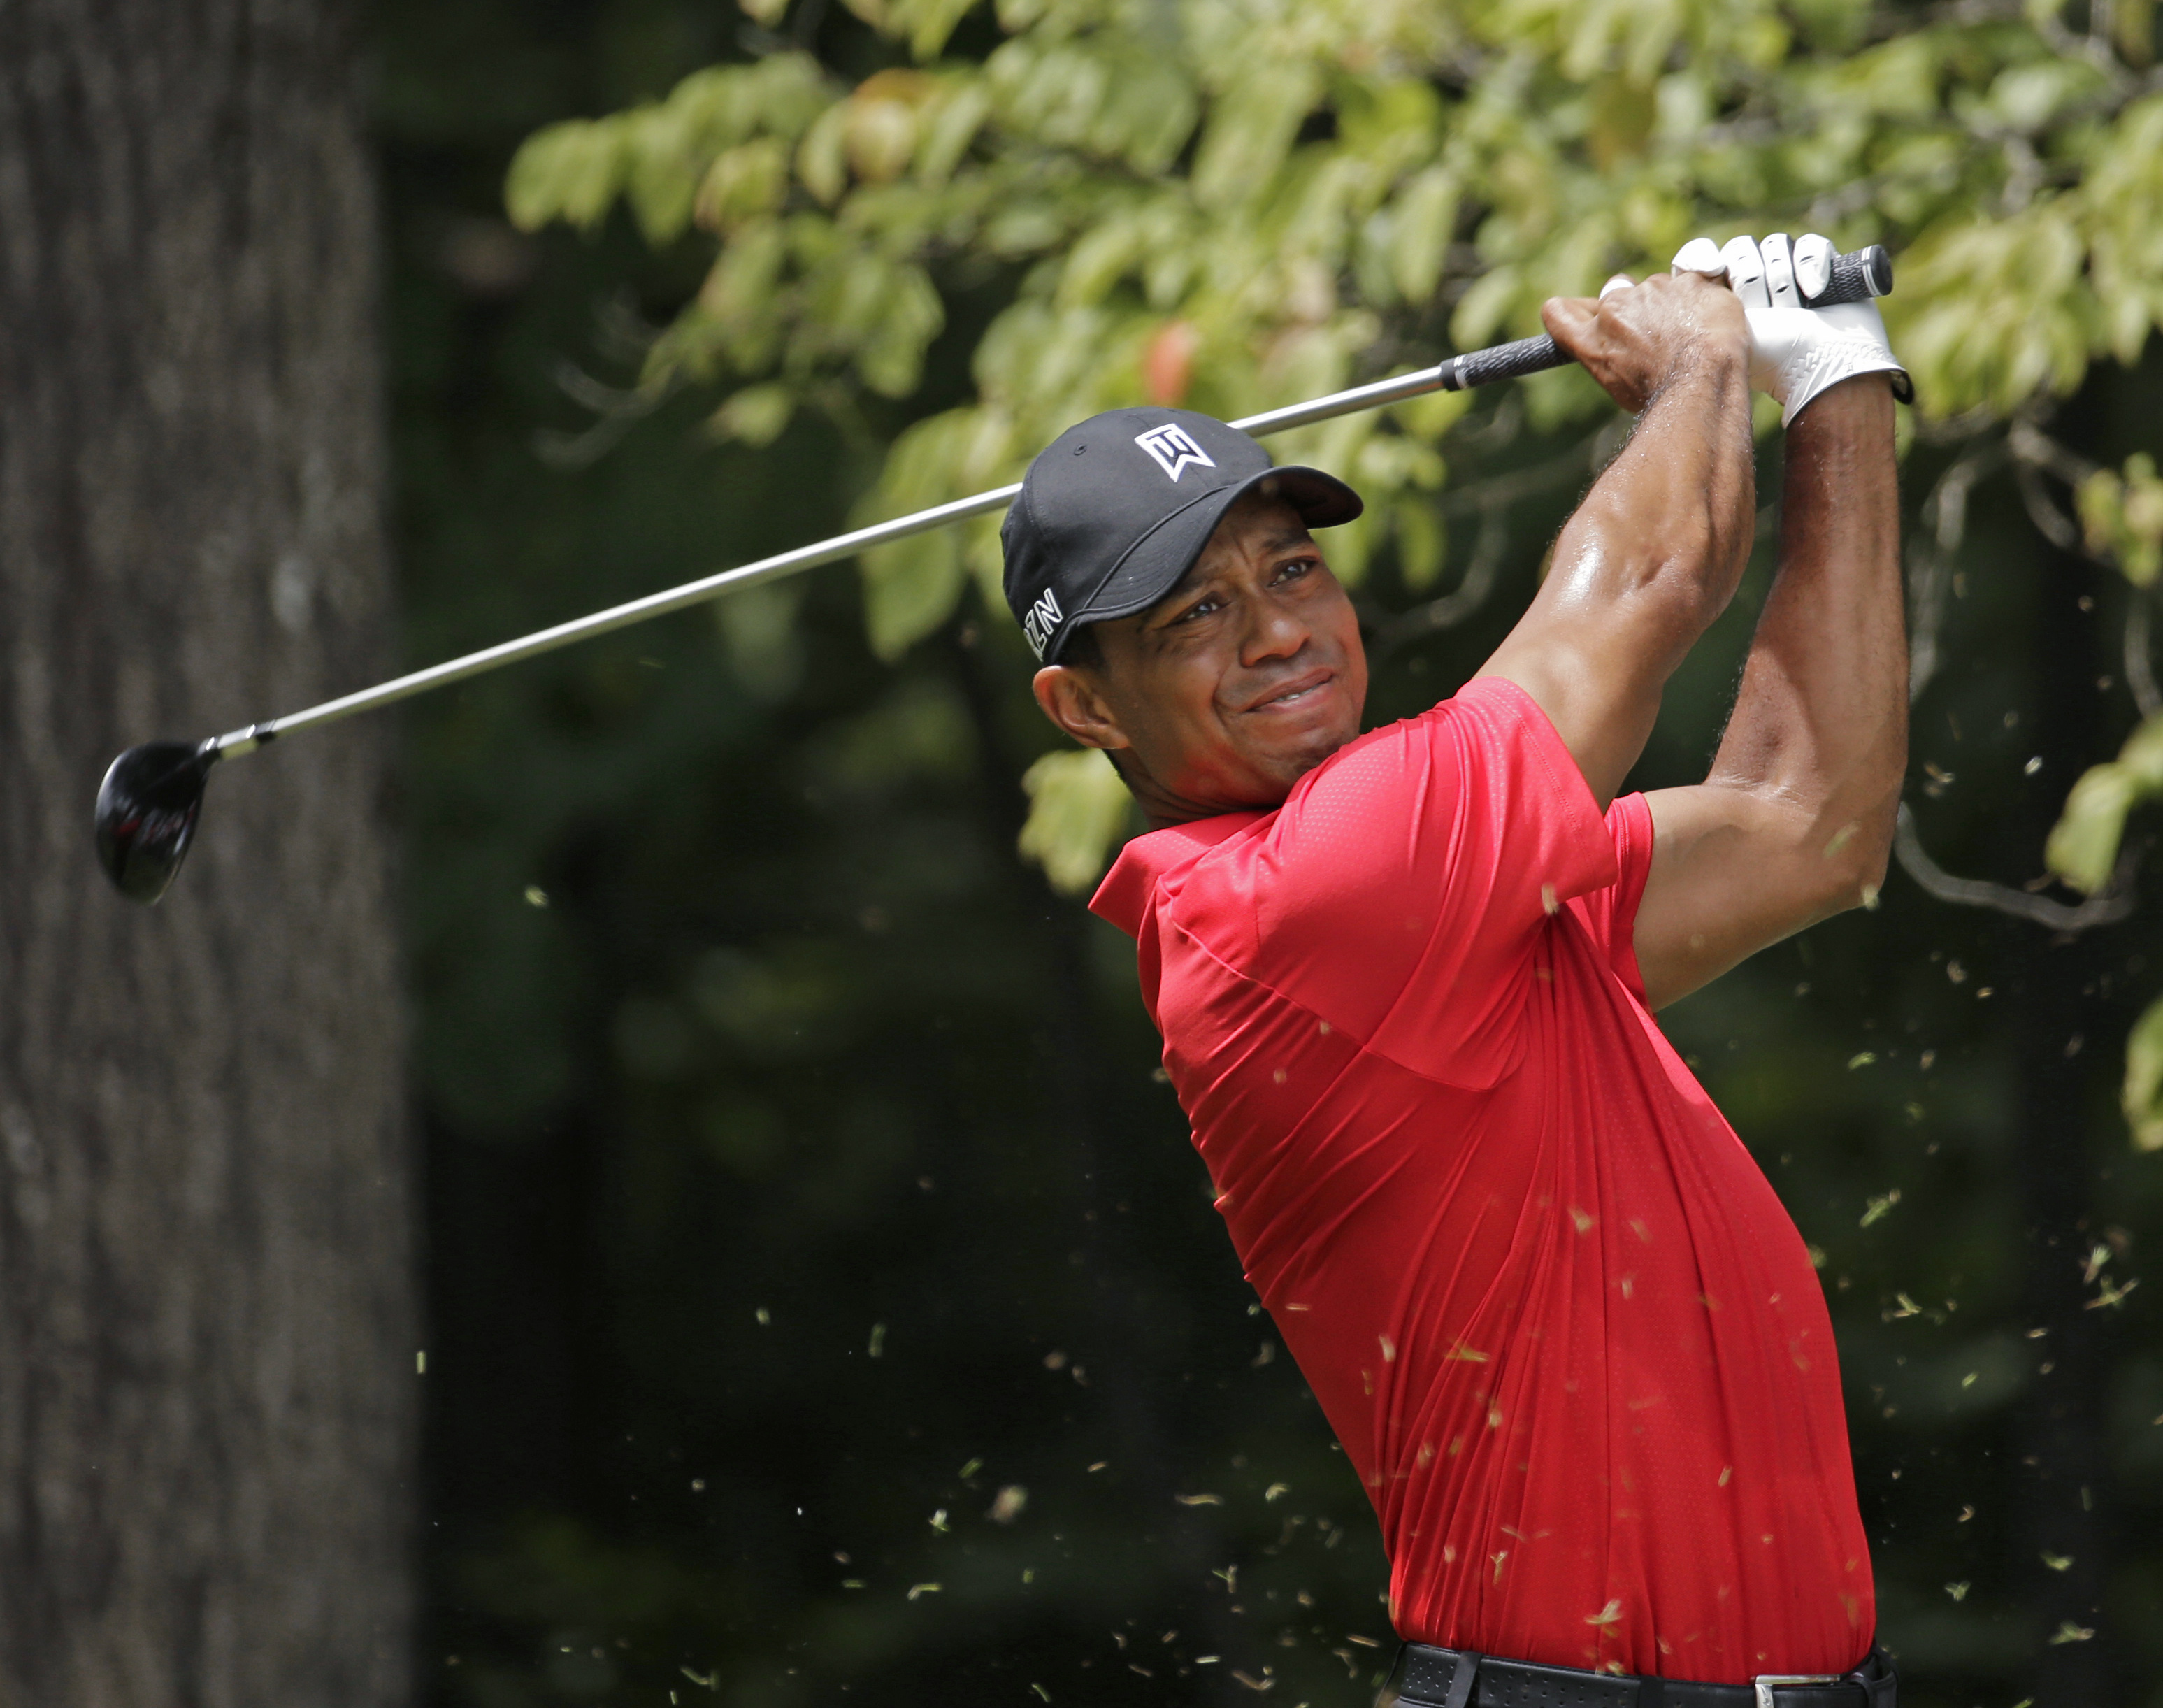 FILE - In this Aug. 23, 2015, file photo, Tiger Woods watches his tee shot on the second hole during the final round of the Wyndham Championship golf tournament at Sedgefield Country Club in Greensboro, N.C. Tiger Woods registered for the U.S. Open, which